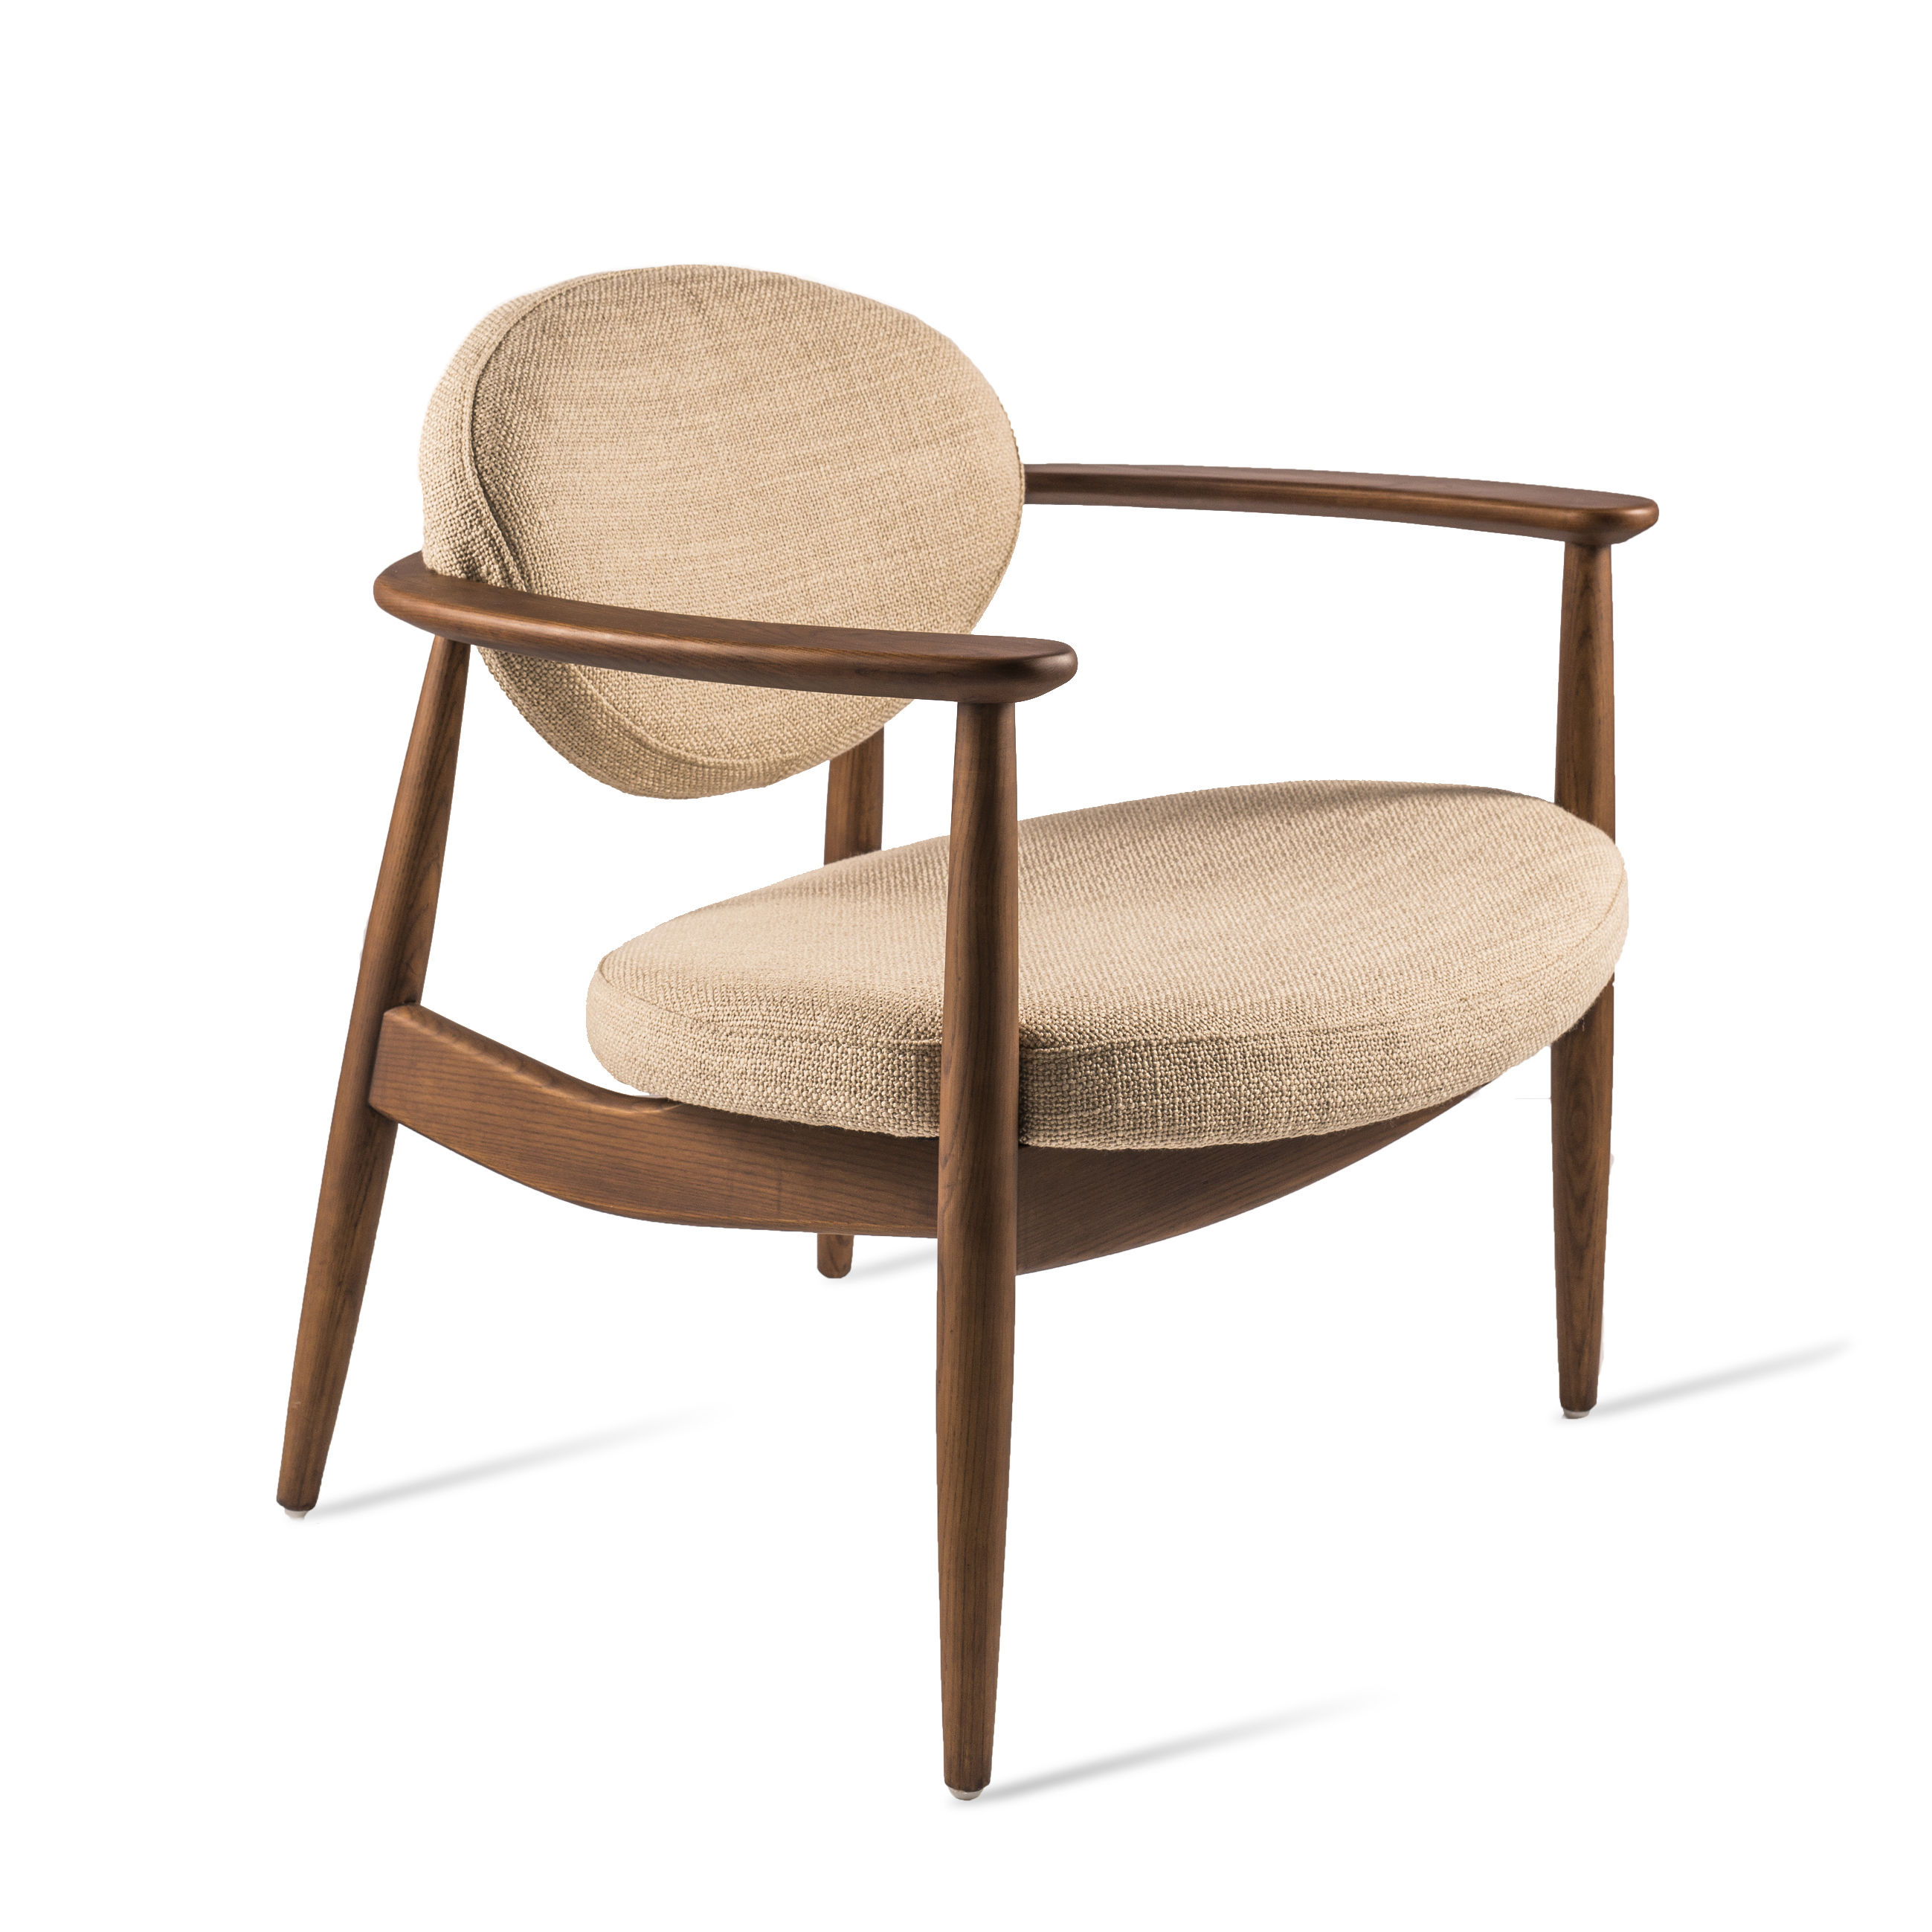 Furniture - Armchairs - Roundy Padded armchair - / Fabric & wood by Pols Potten - Beige / Wood - Fabric, Foam, Varnished ashwood